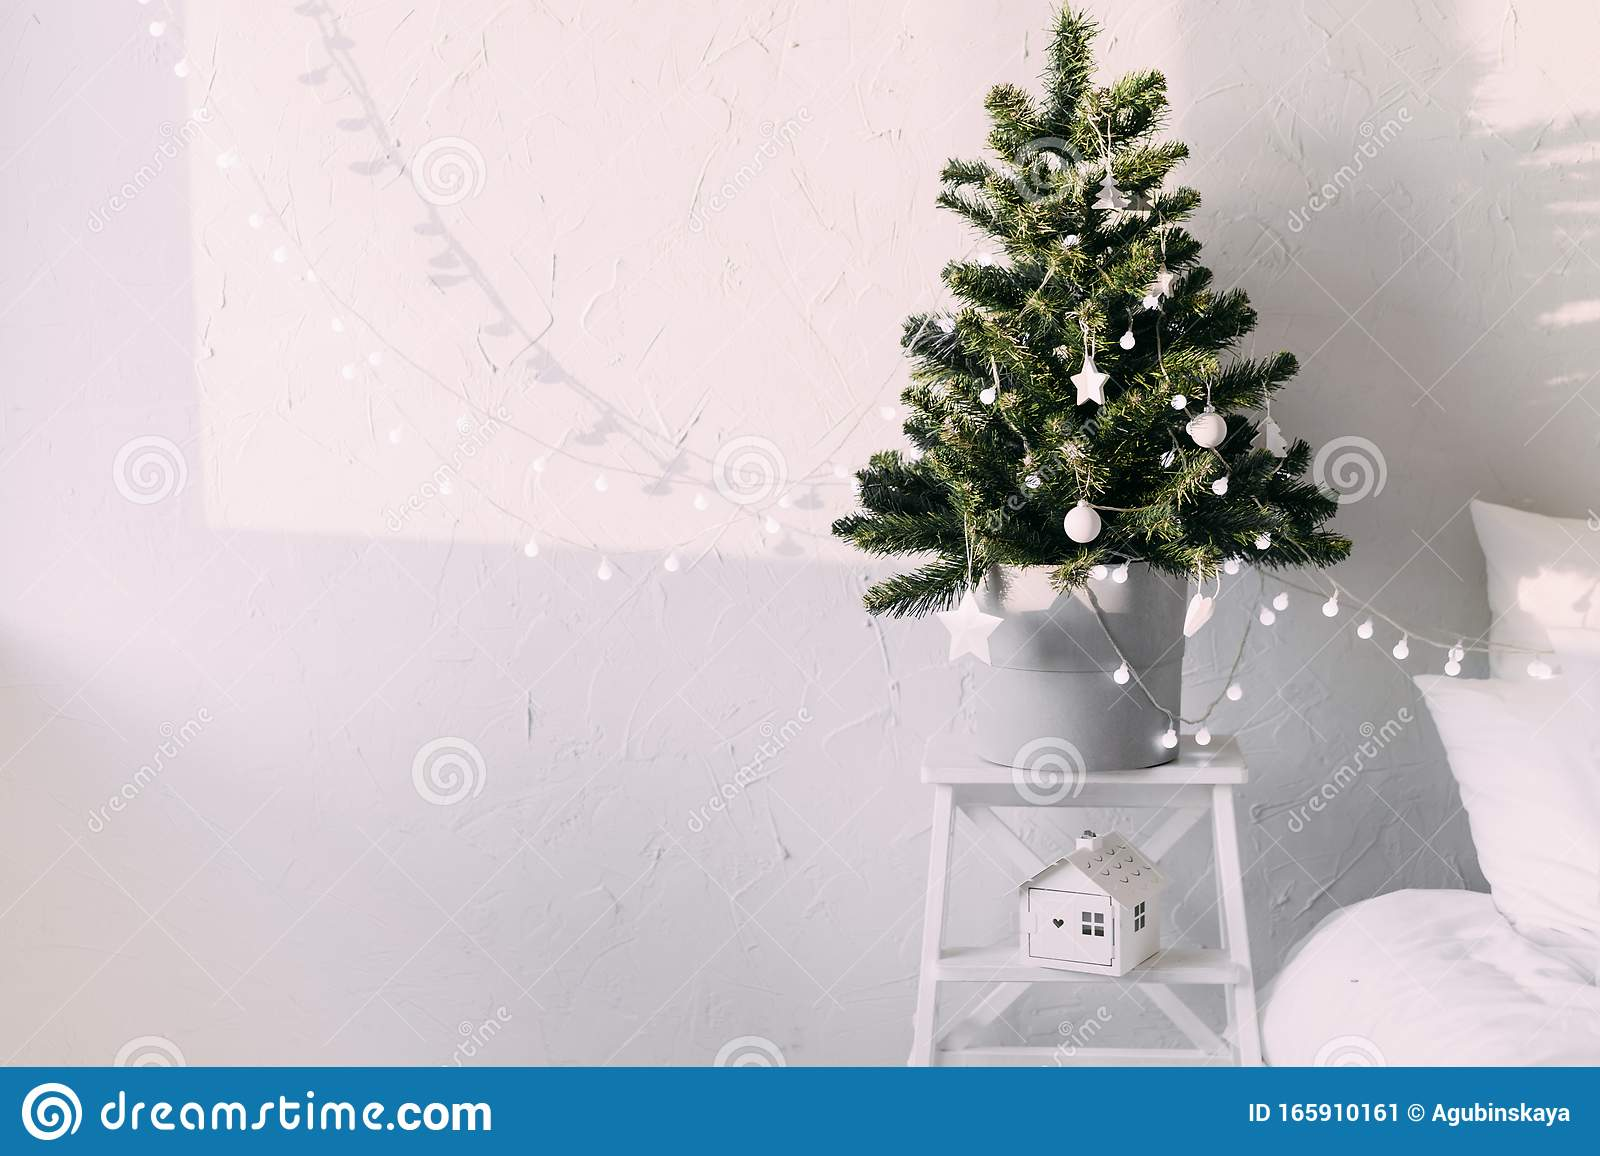 Interior Living Room With A Christmas Tree And Decorations Stock Image Image Of Interior Holiday 165910161